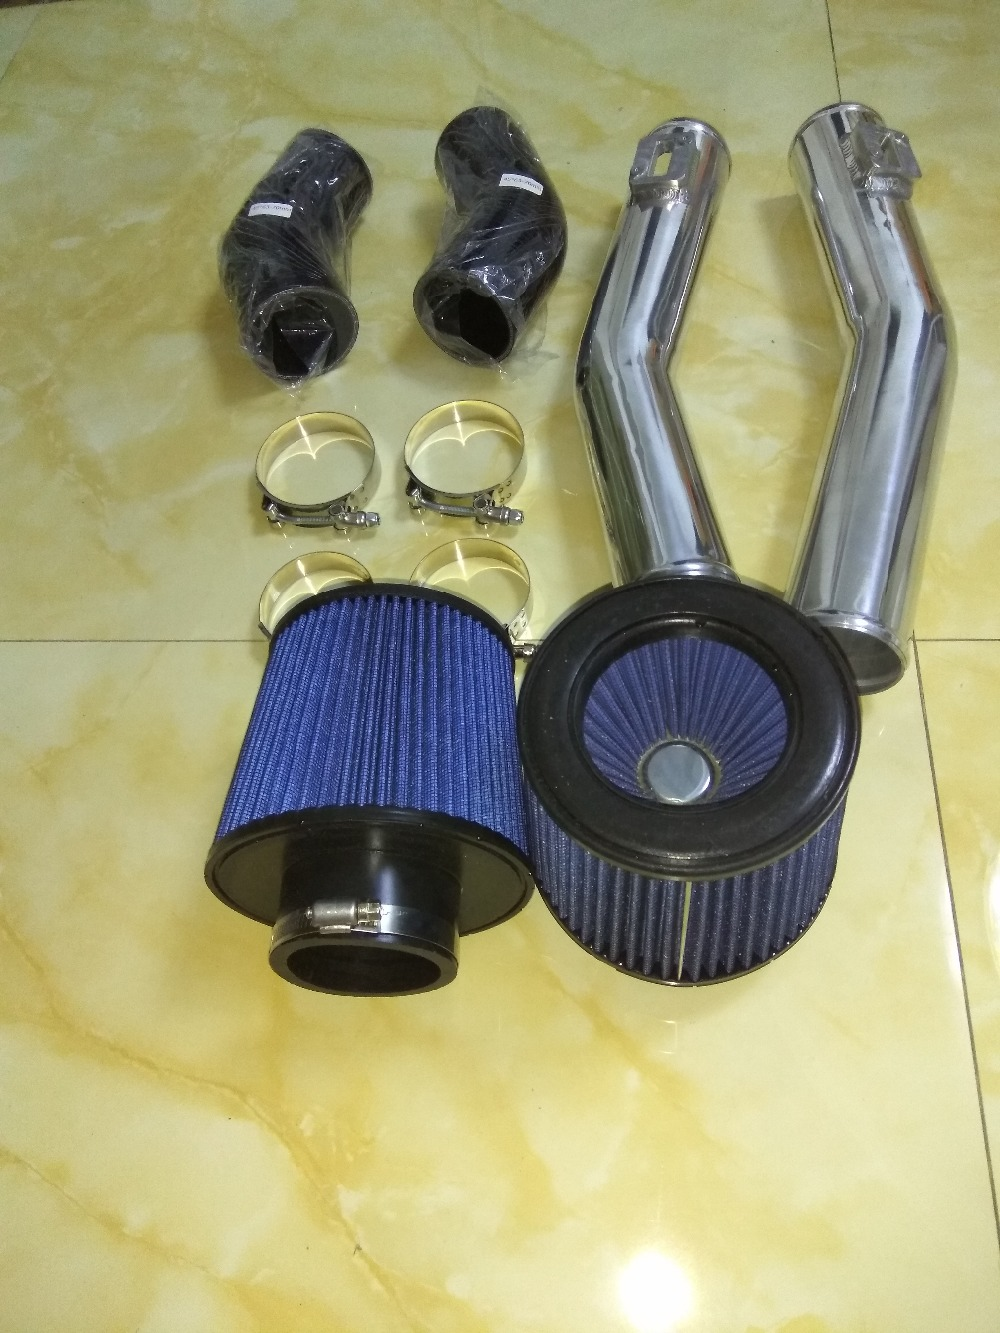 Gtr R35 Turbo Upper Air Intake Pipe And Filter 2009 2015 76mm Fuel 70mm Diameter In Hoses Clamps From Automobiles Motorcycles On